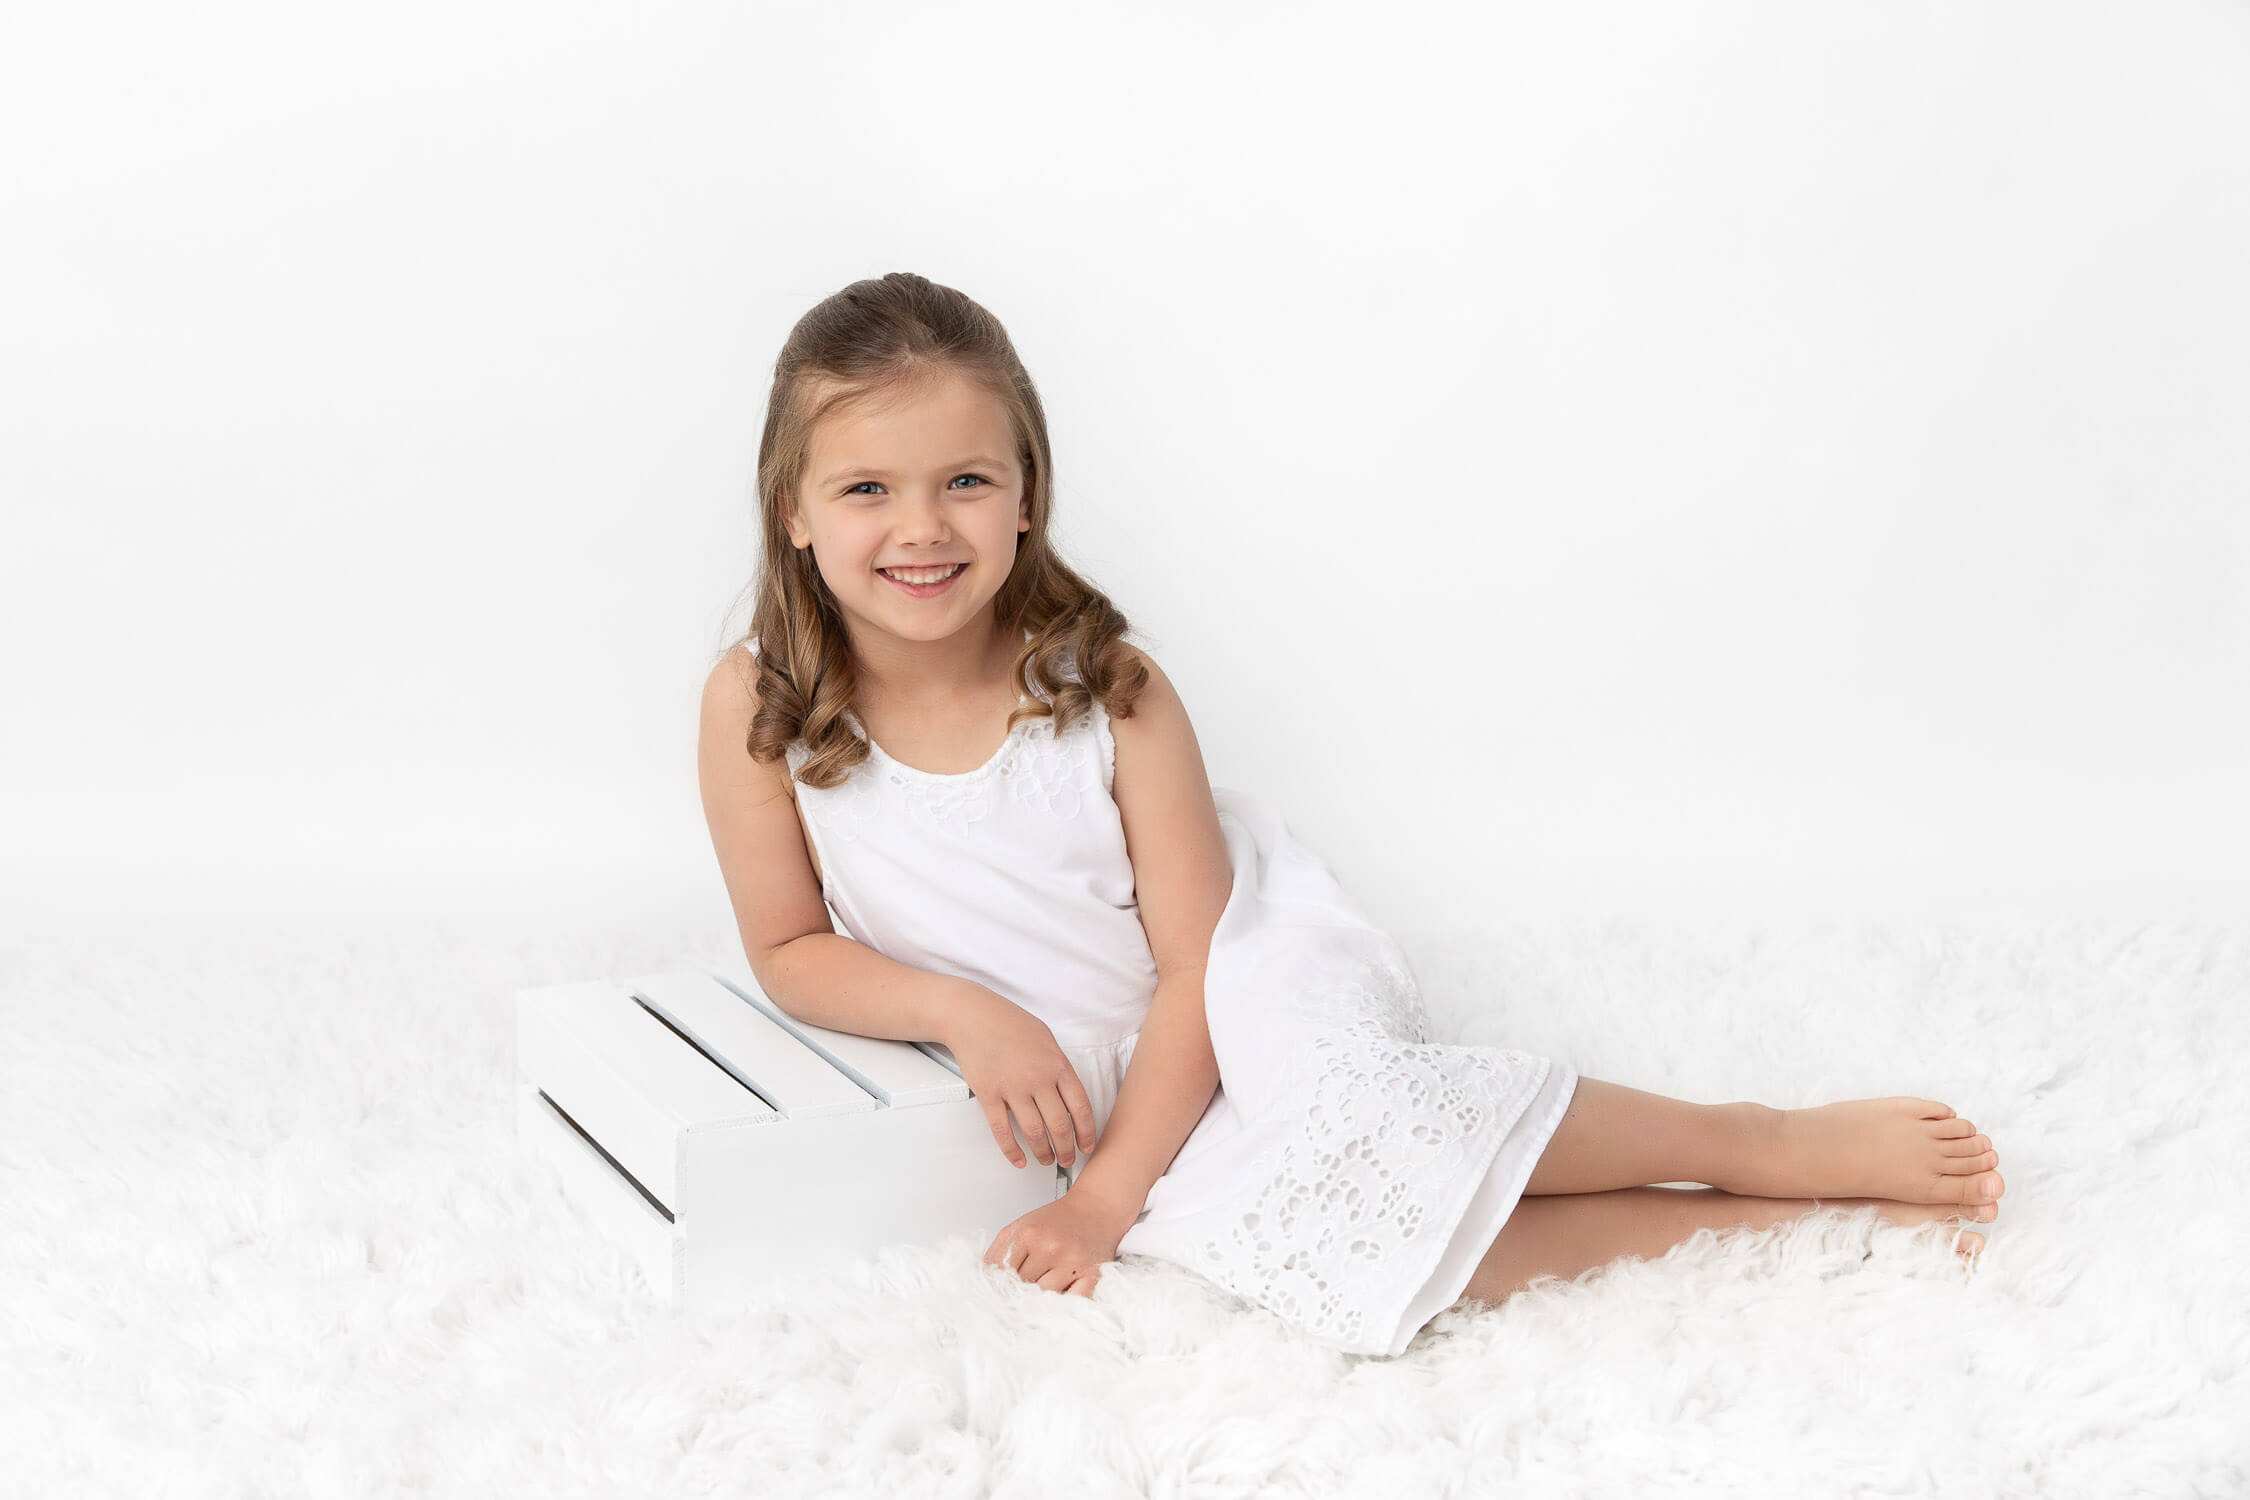 young girl wearing a white dress sitting on white fur leaning on a white crate